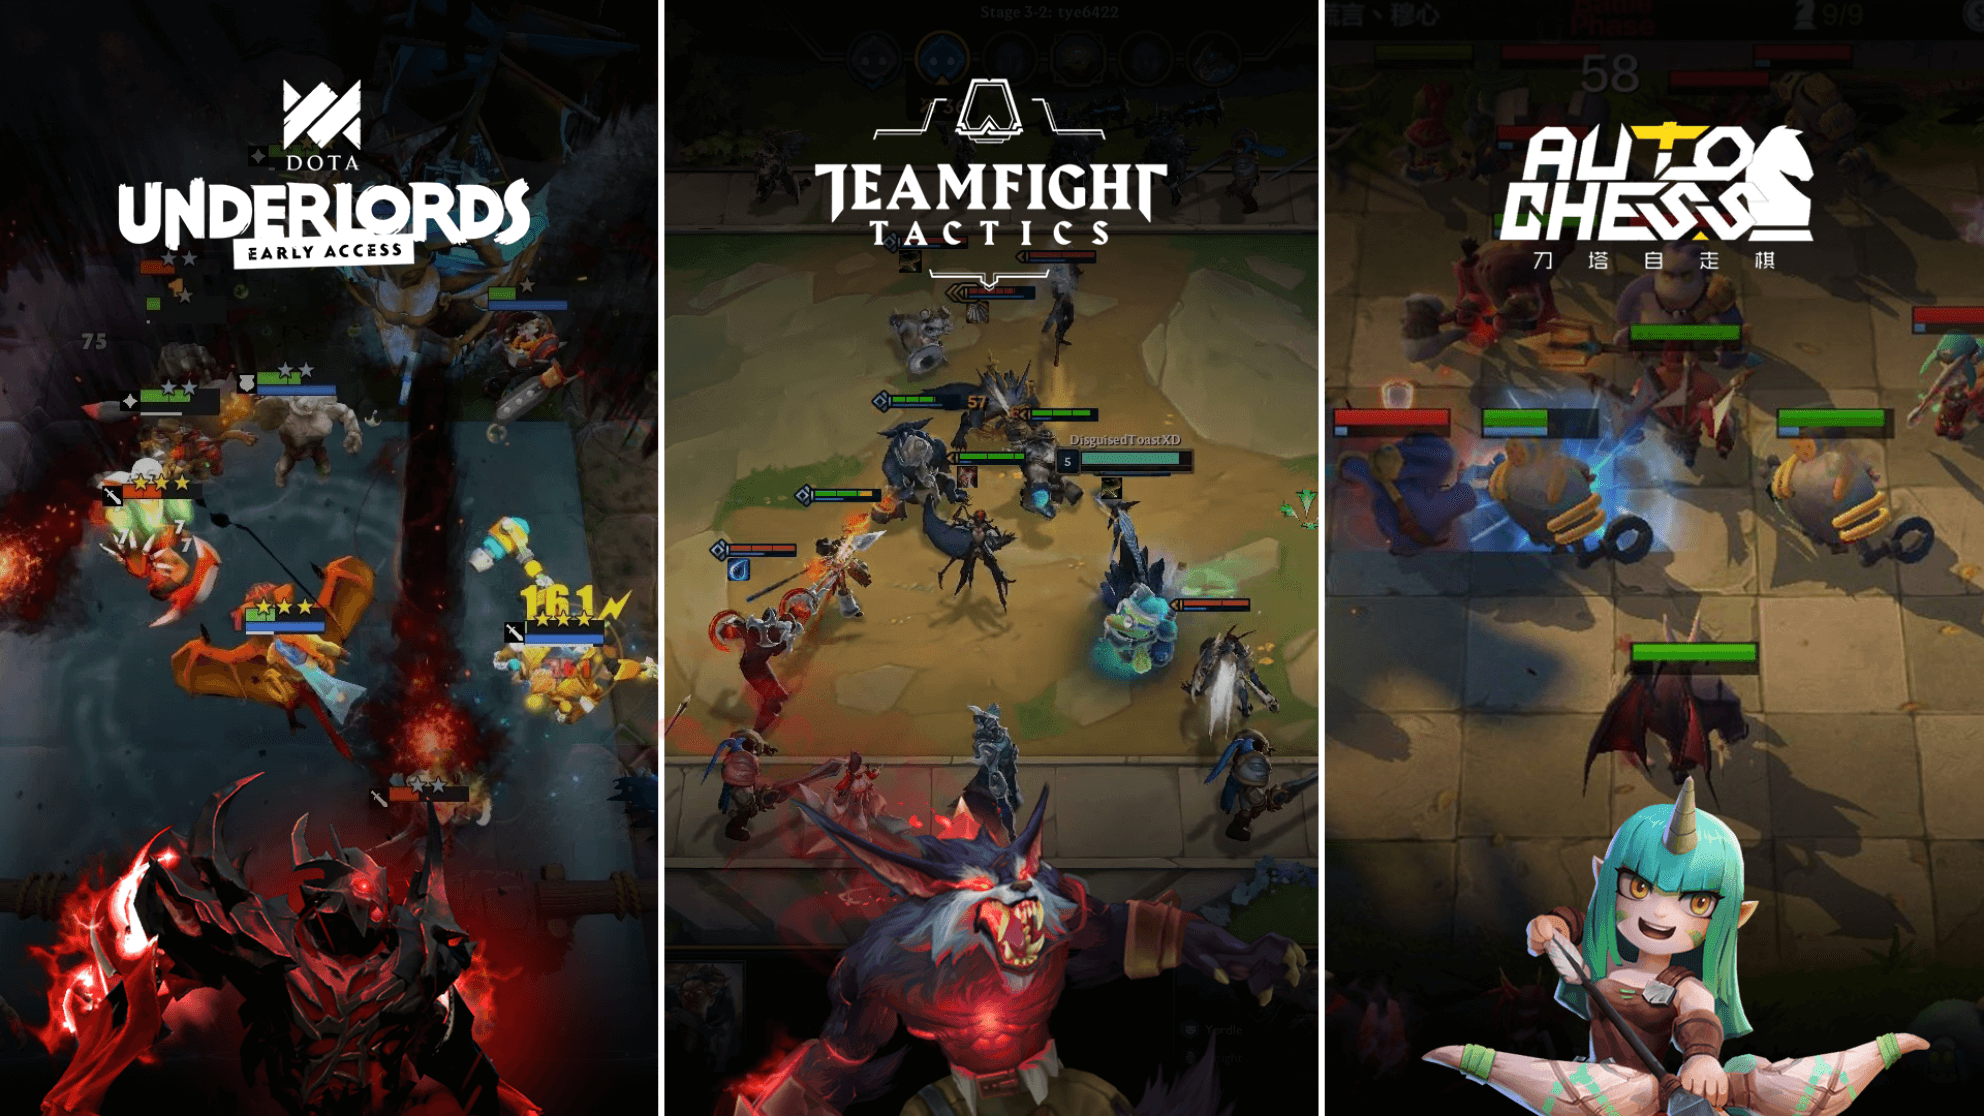 Dota Underlords and Teamfight Tactics